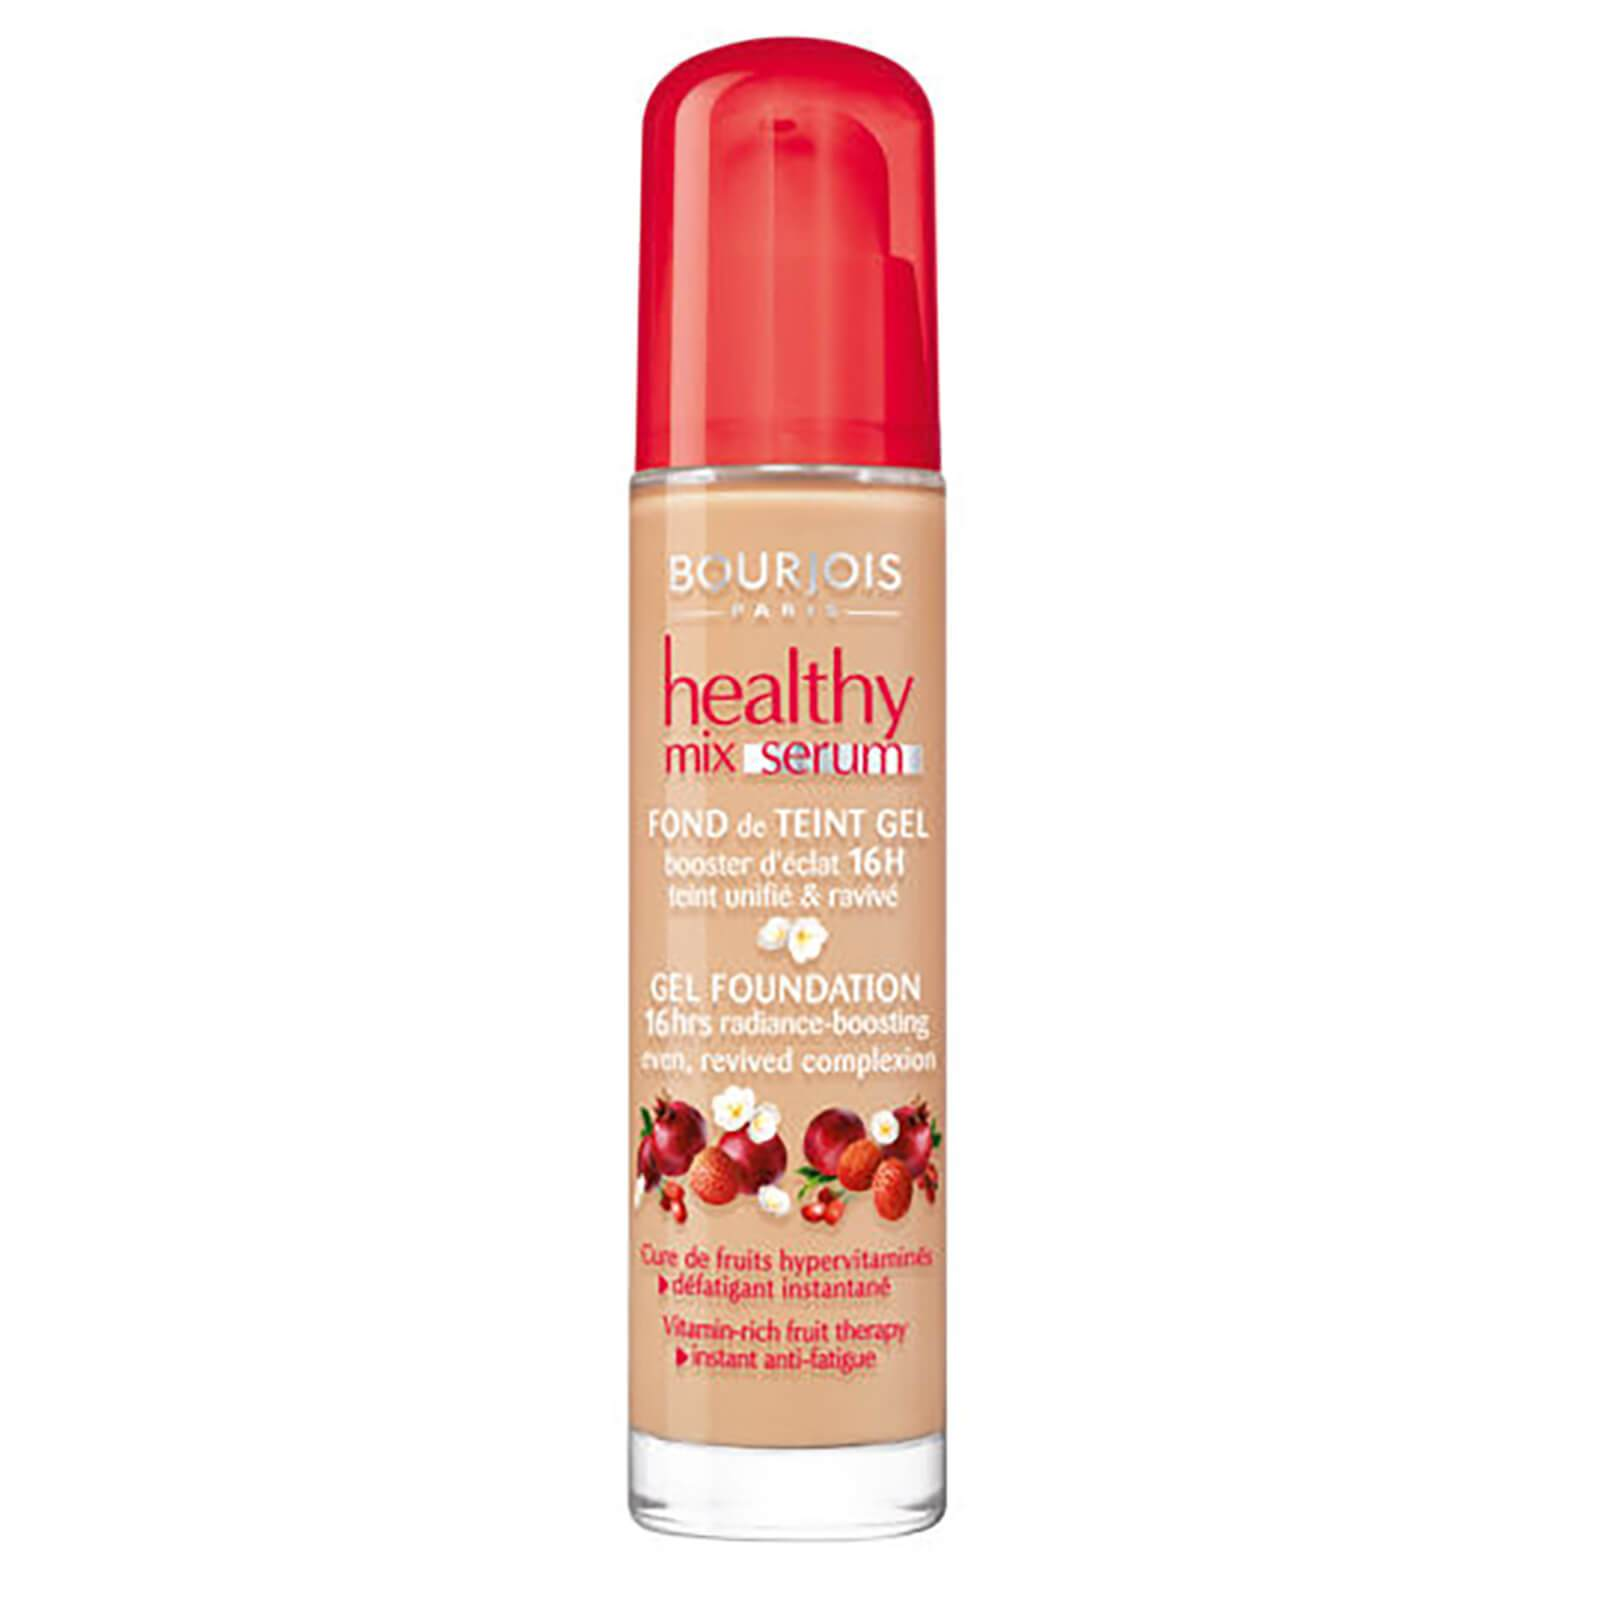 Bourjois Healthy Mix Serum Foundation - CHOICE OF SHADES